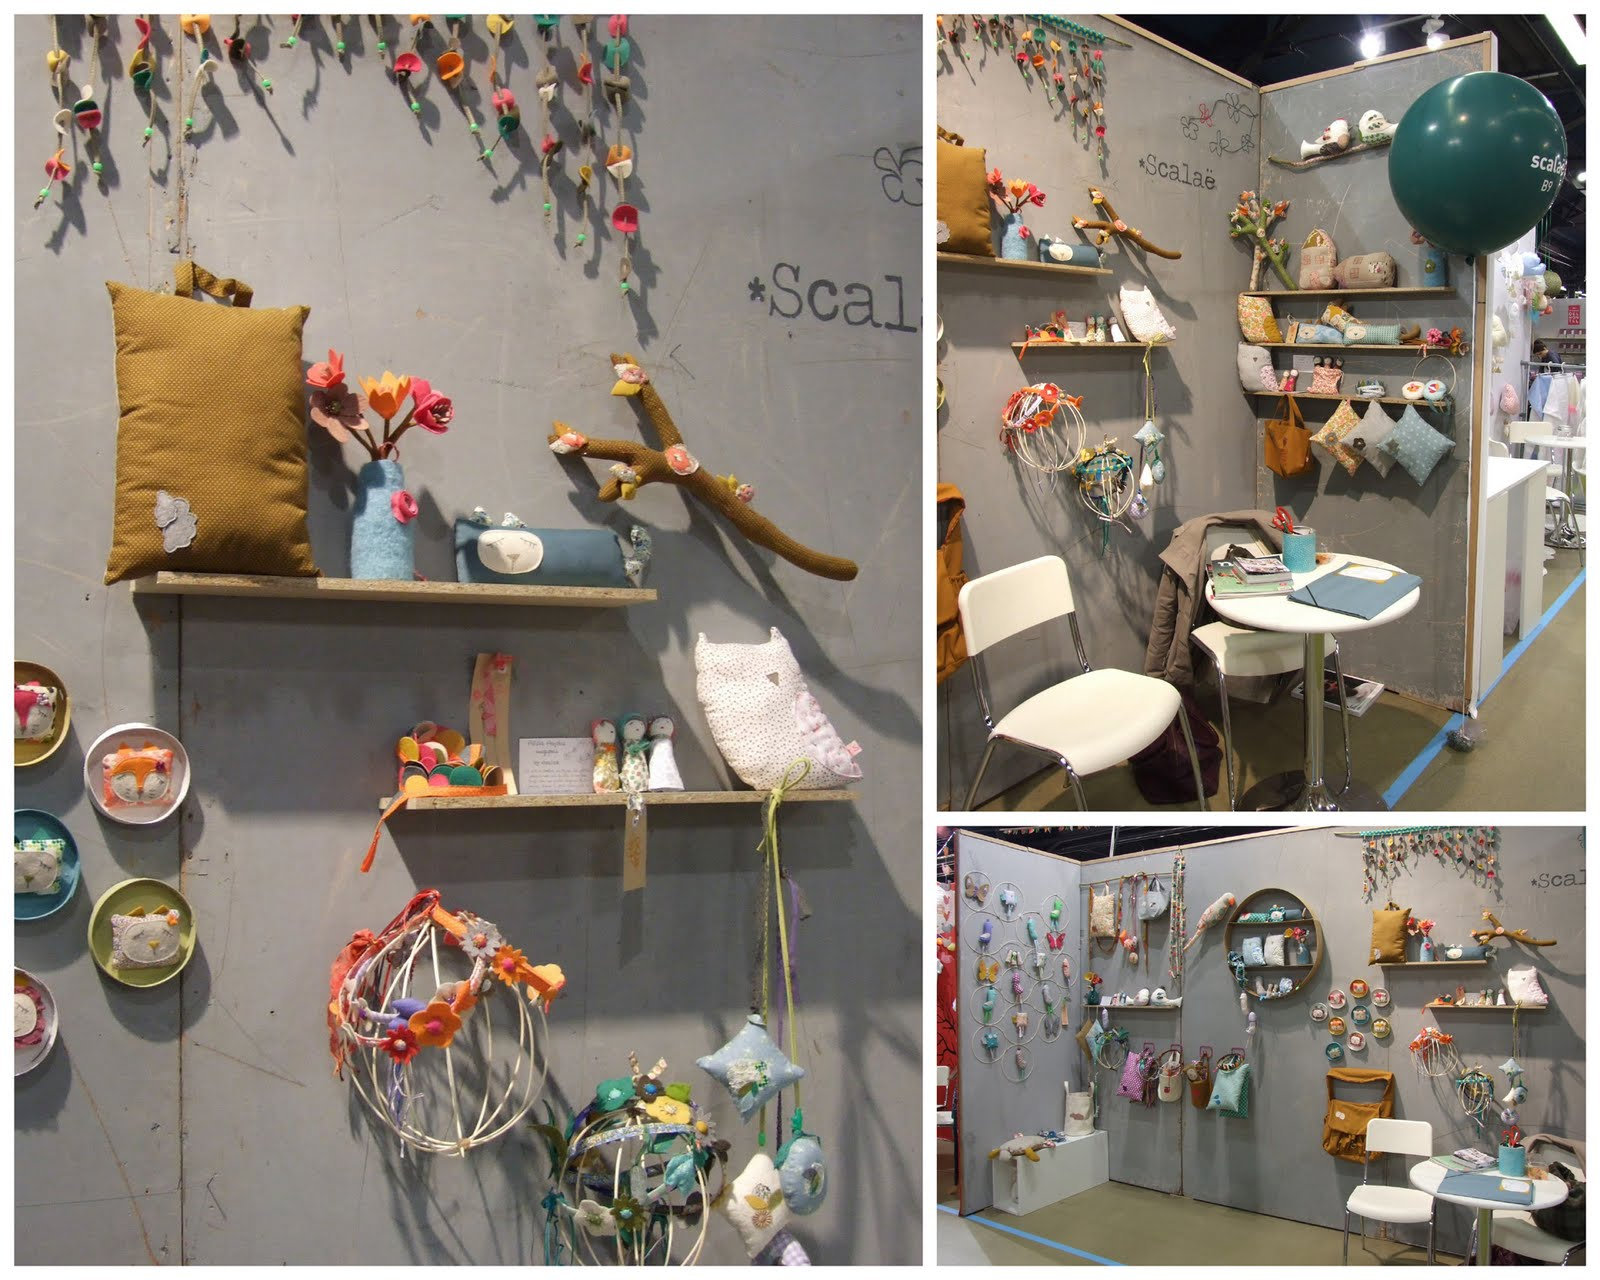 Scala petites fantaisies pour enfants playtime for Playtime salon